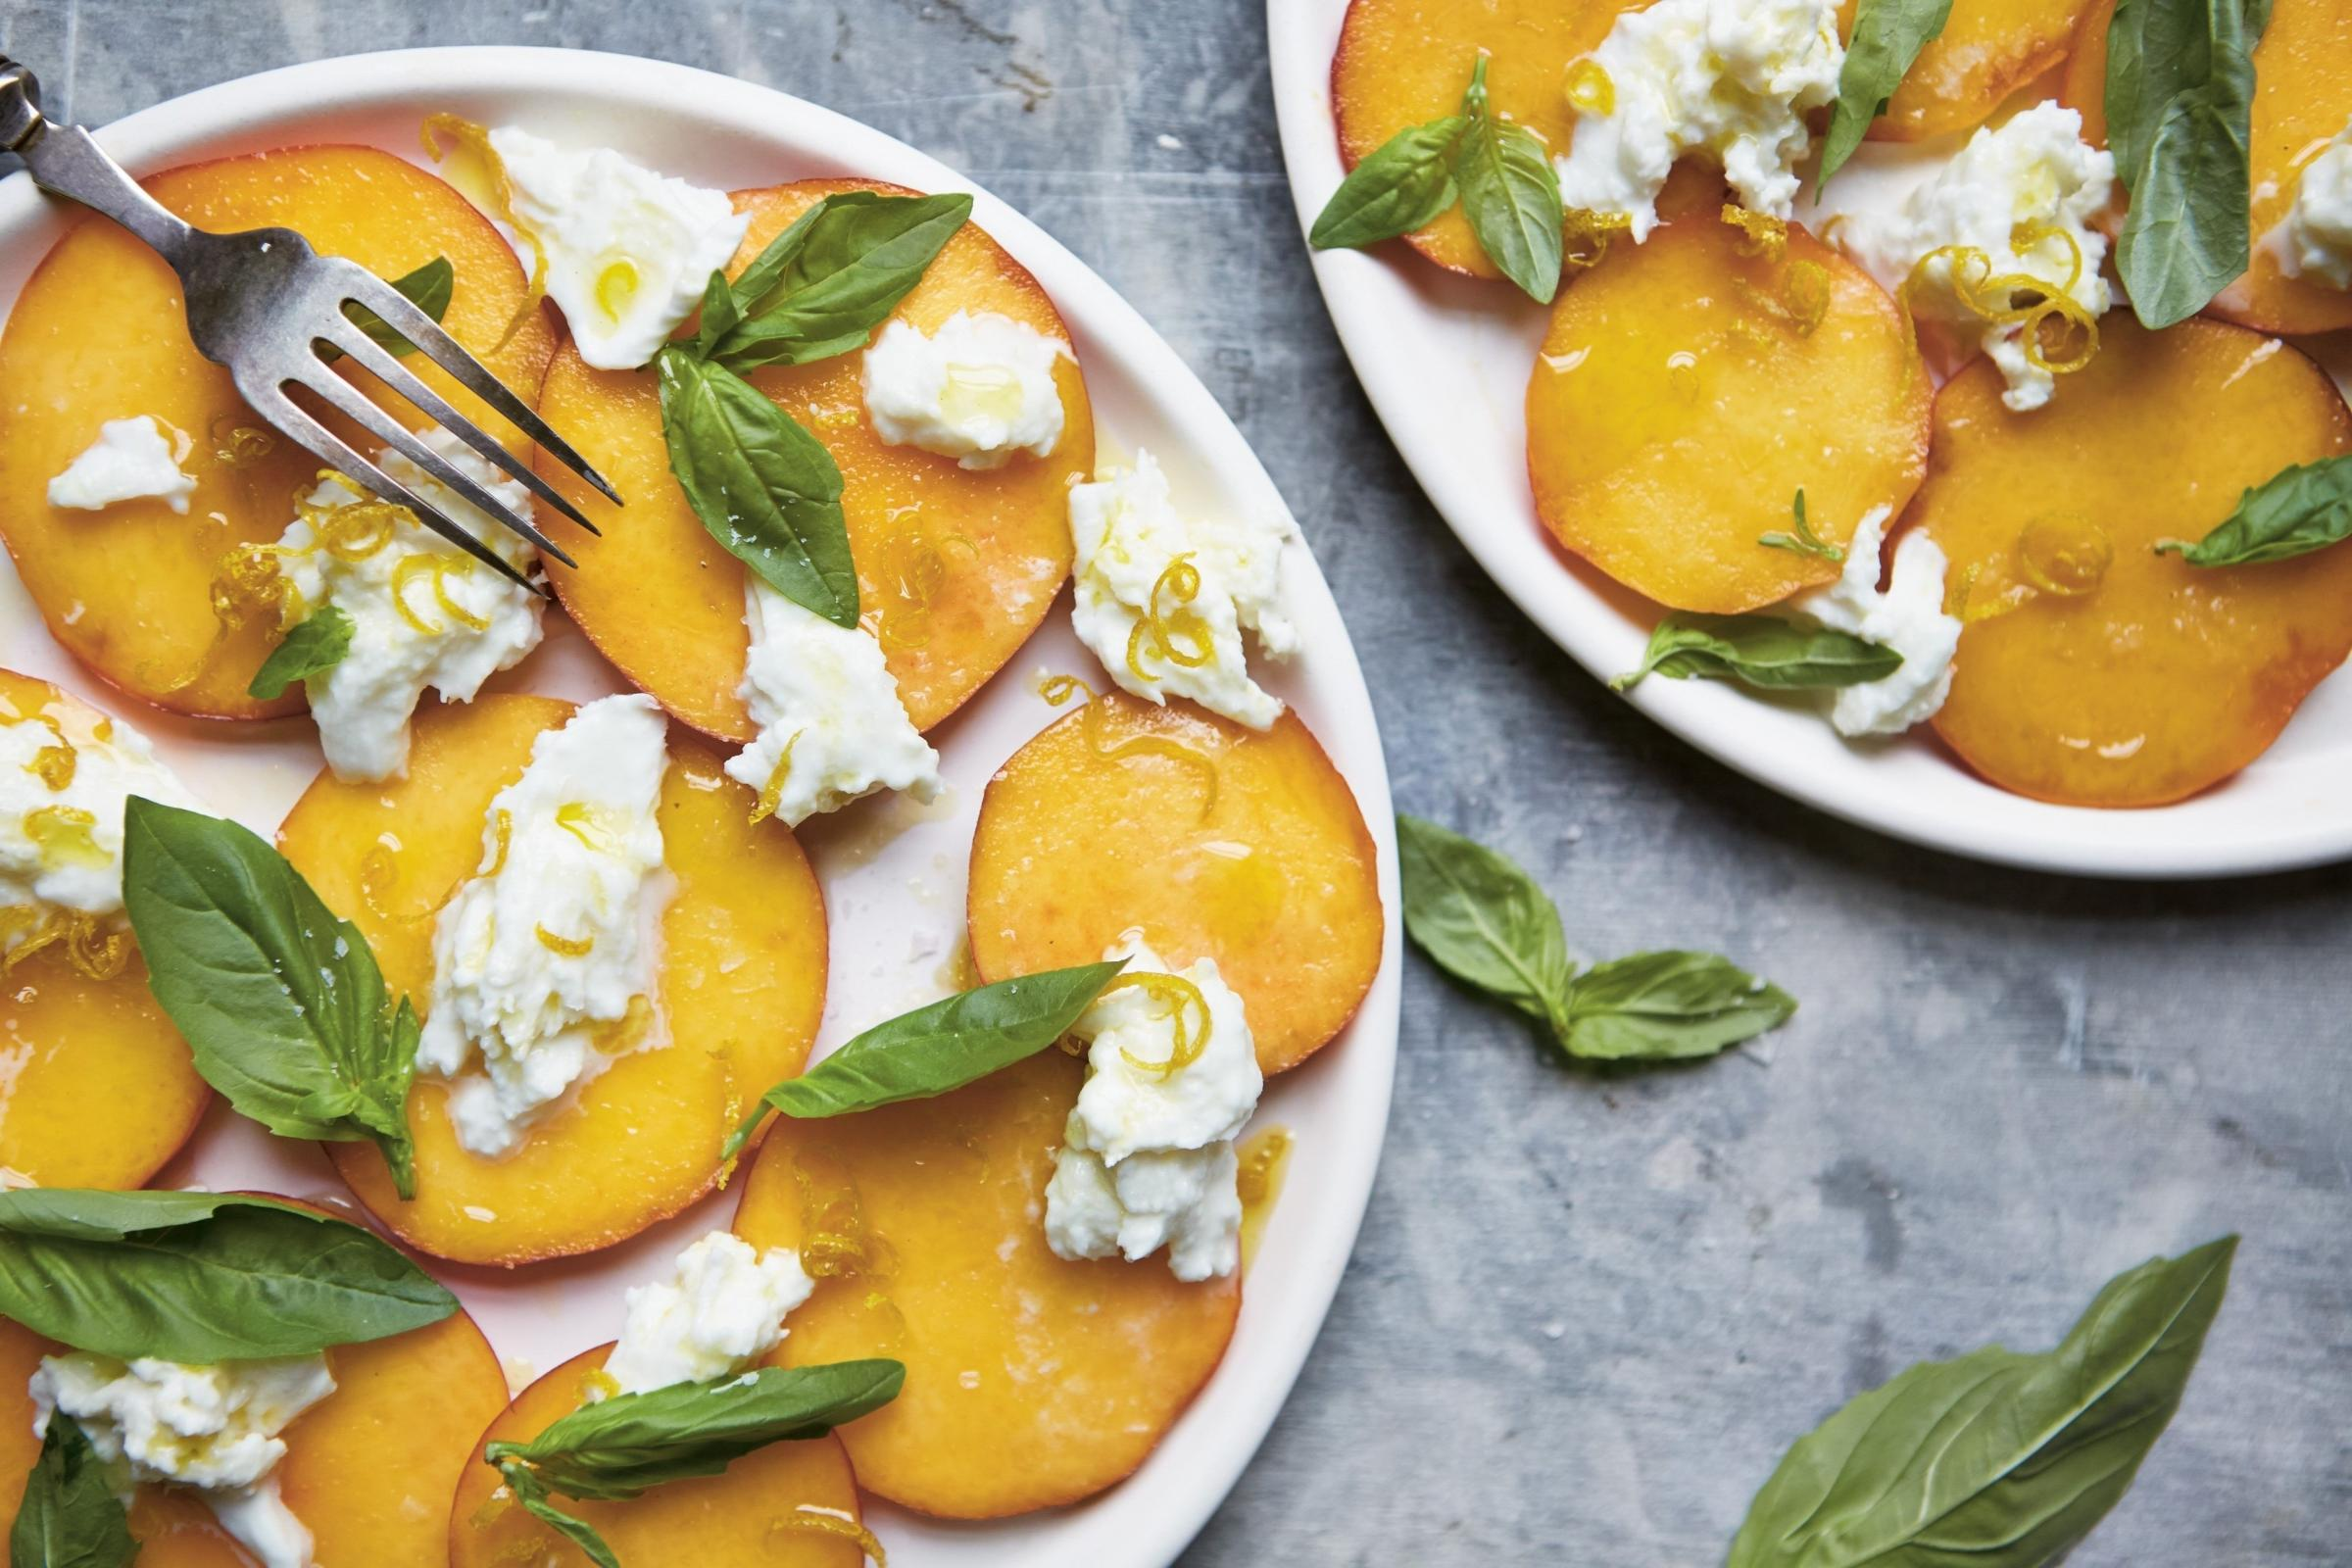 RECIPE: Peach and mozzarella salad with crispy lemon zest and basil